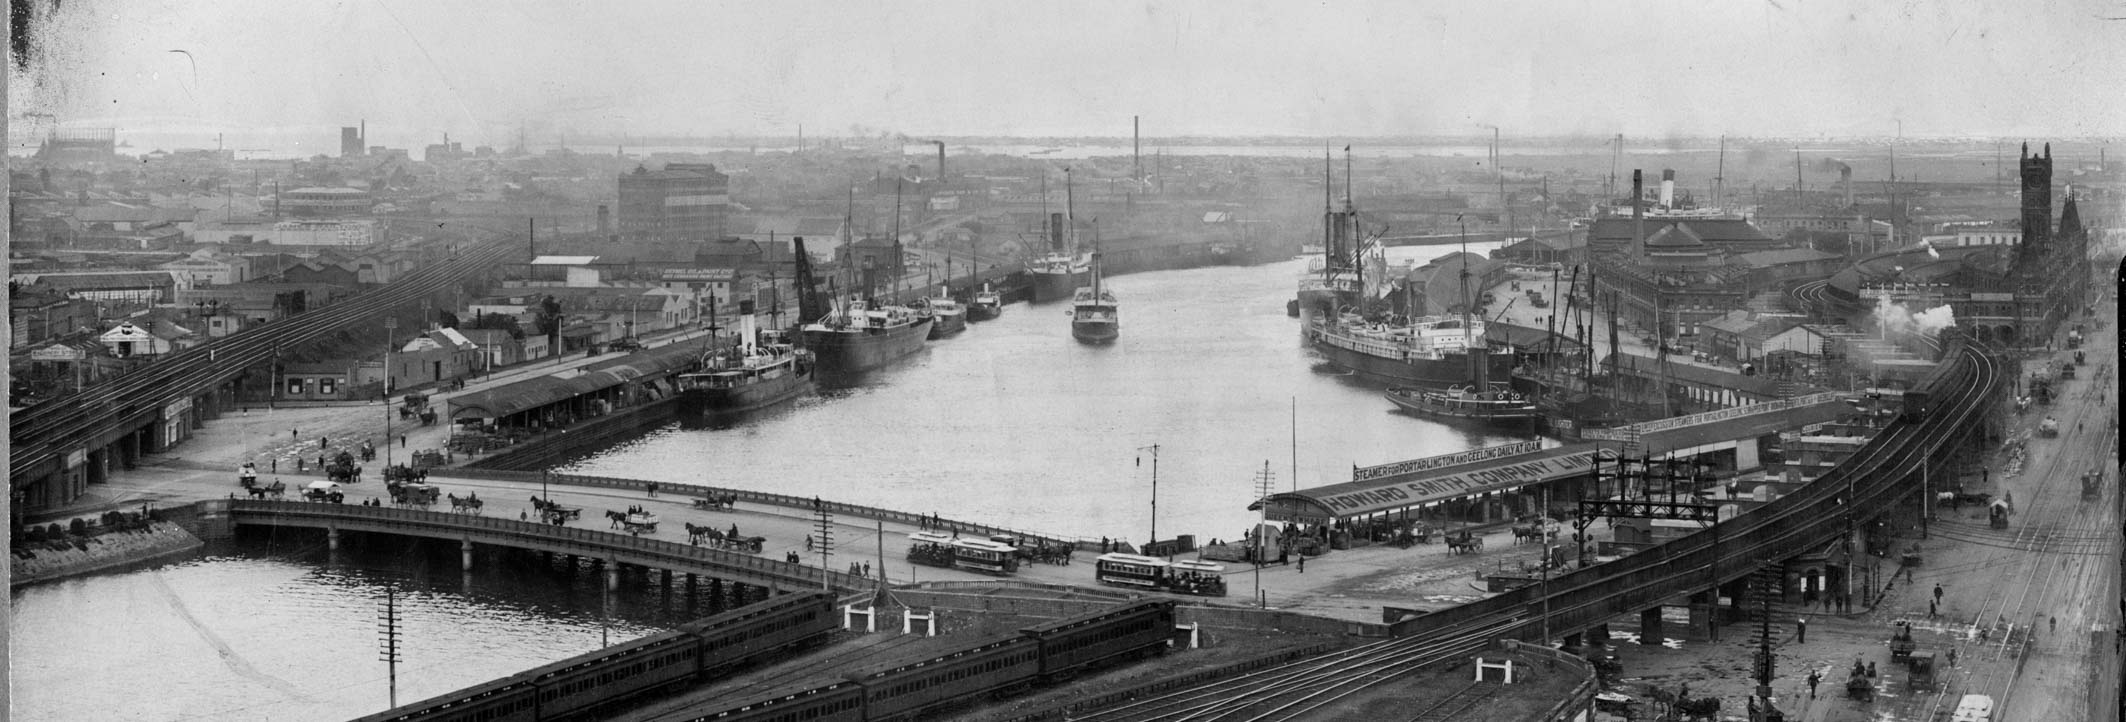 Black and white photo of a river port